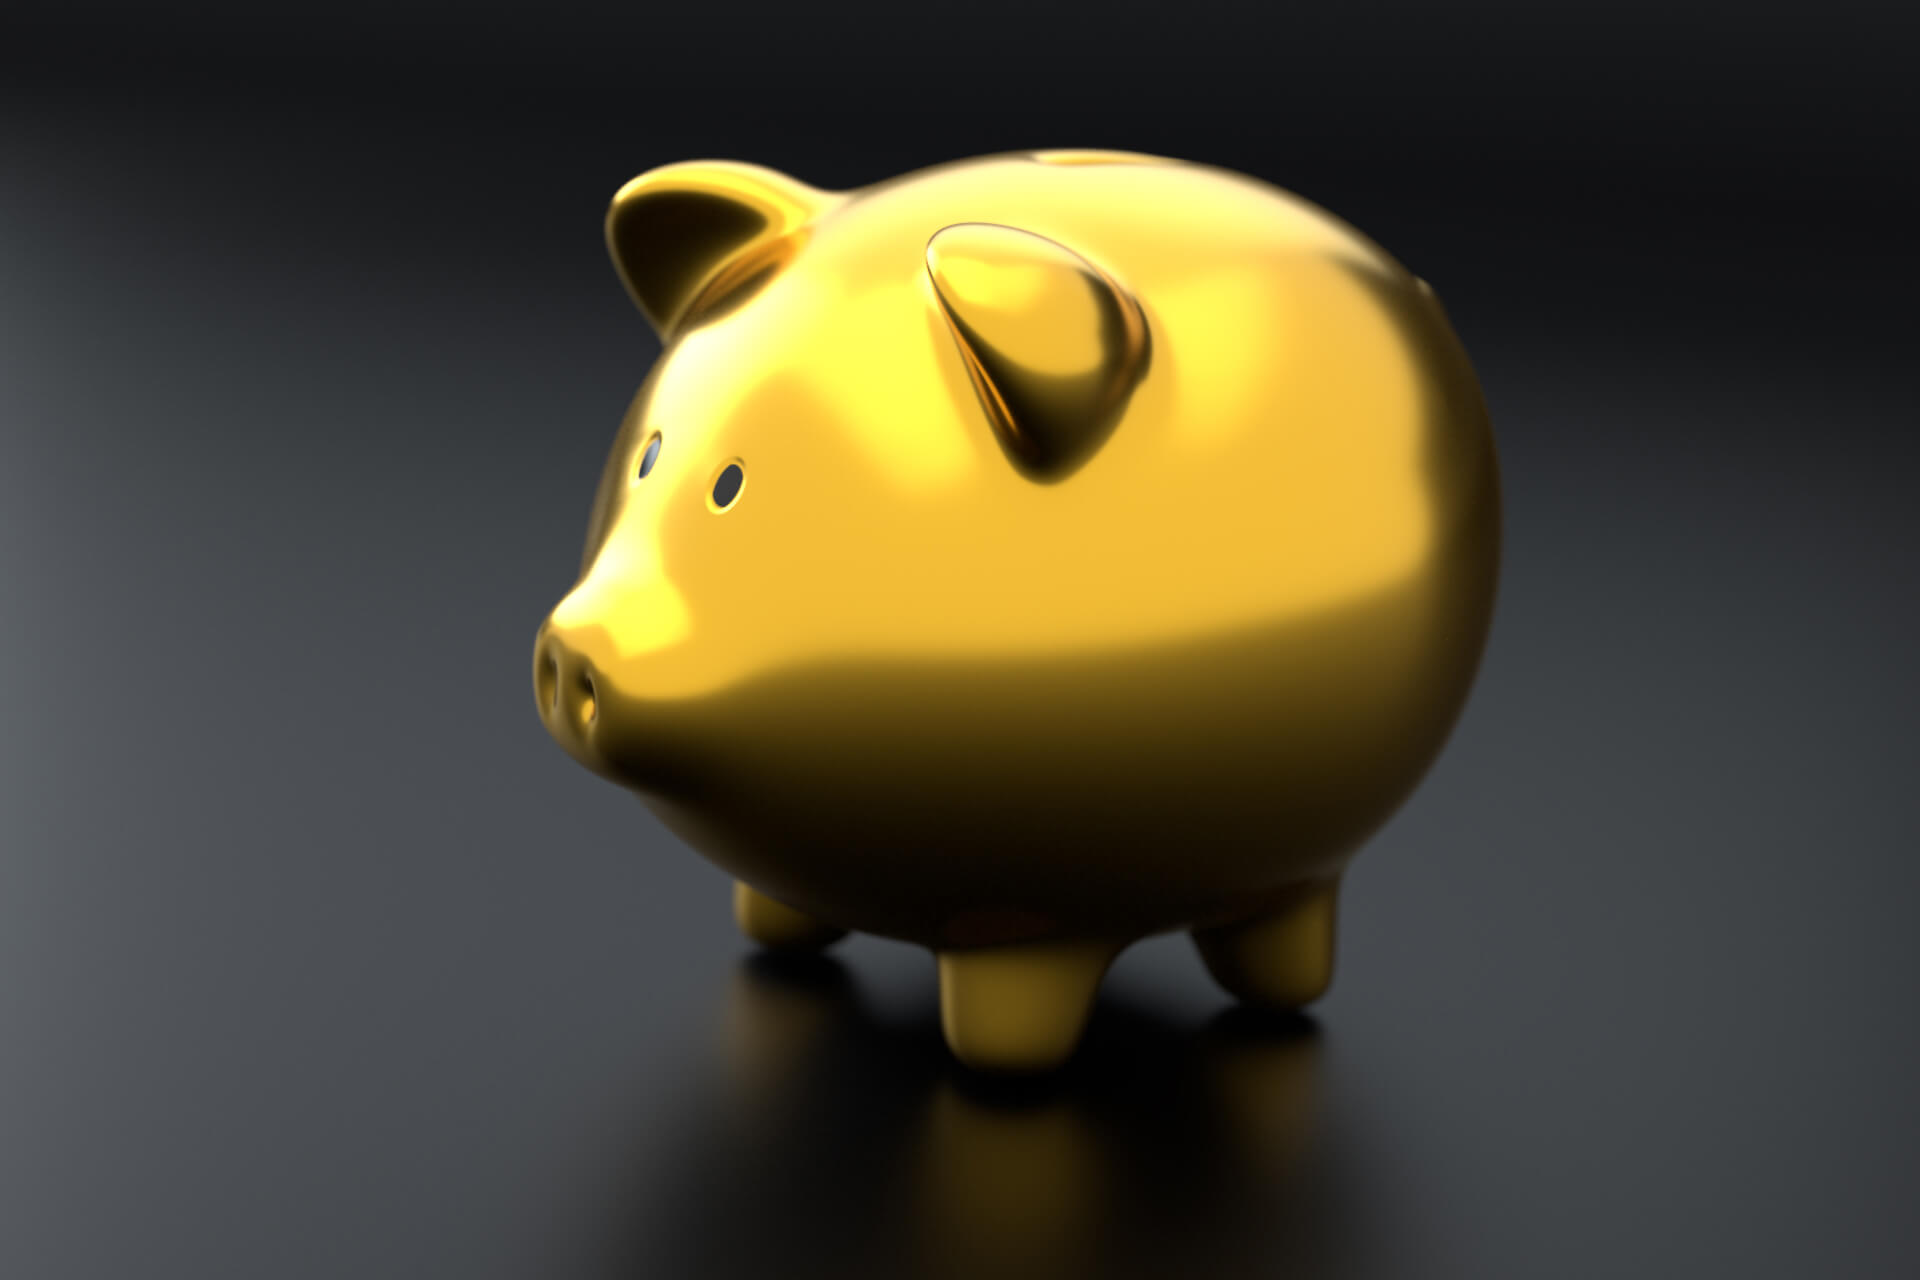 gold piggy bank free image download